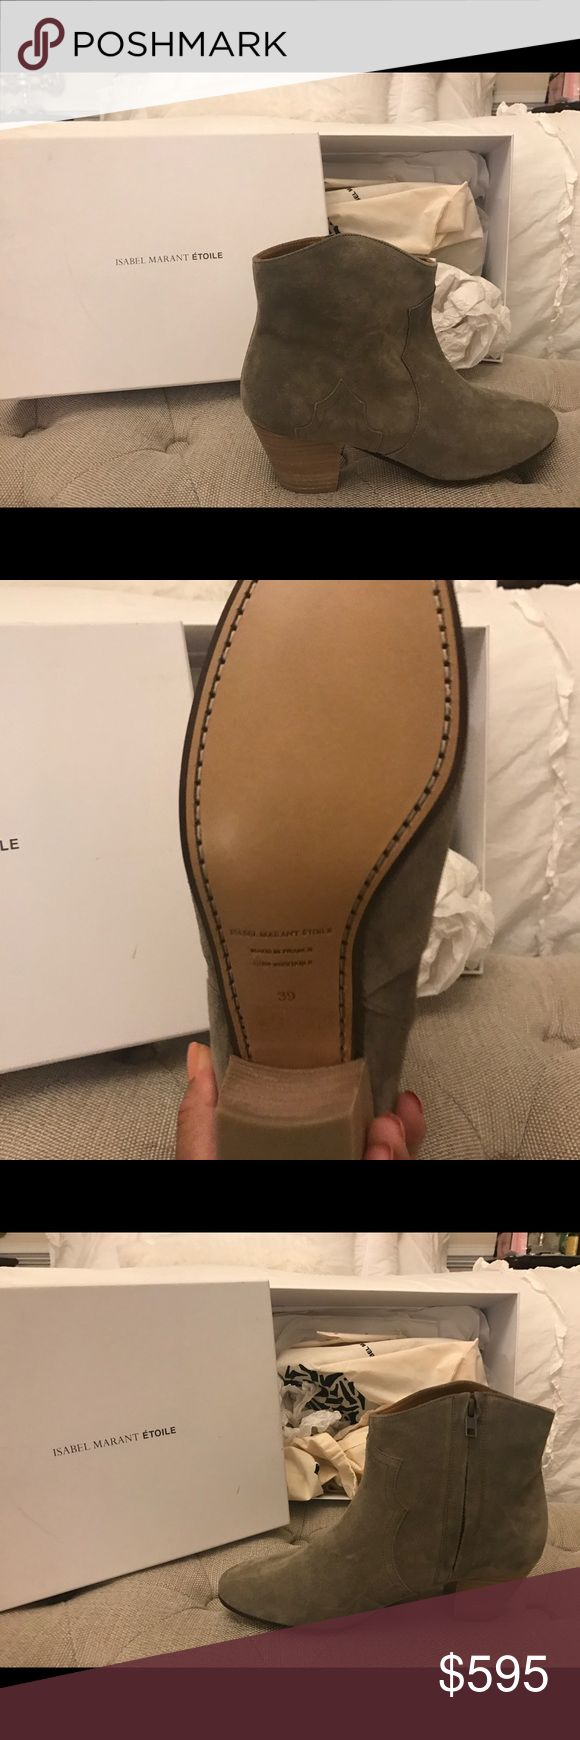 Isabel marant green olive suede dicker boot Authentic brand new Isabel Marant Dicker boot in an olive green suede color... perfect for the fall! And super comfortable Isabel Marant Shoes Ankle Boots & Booties